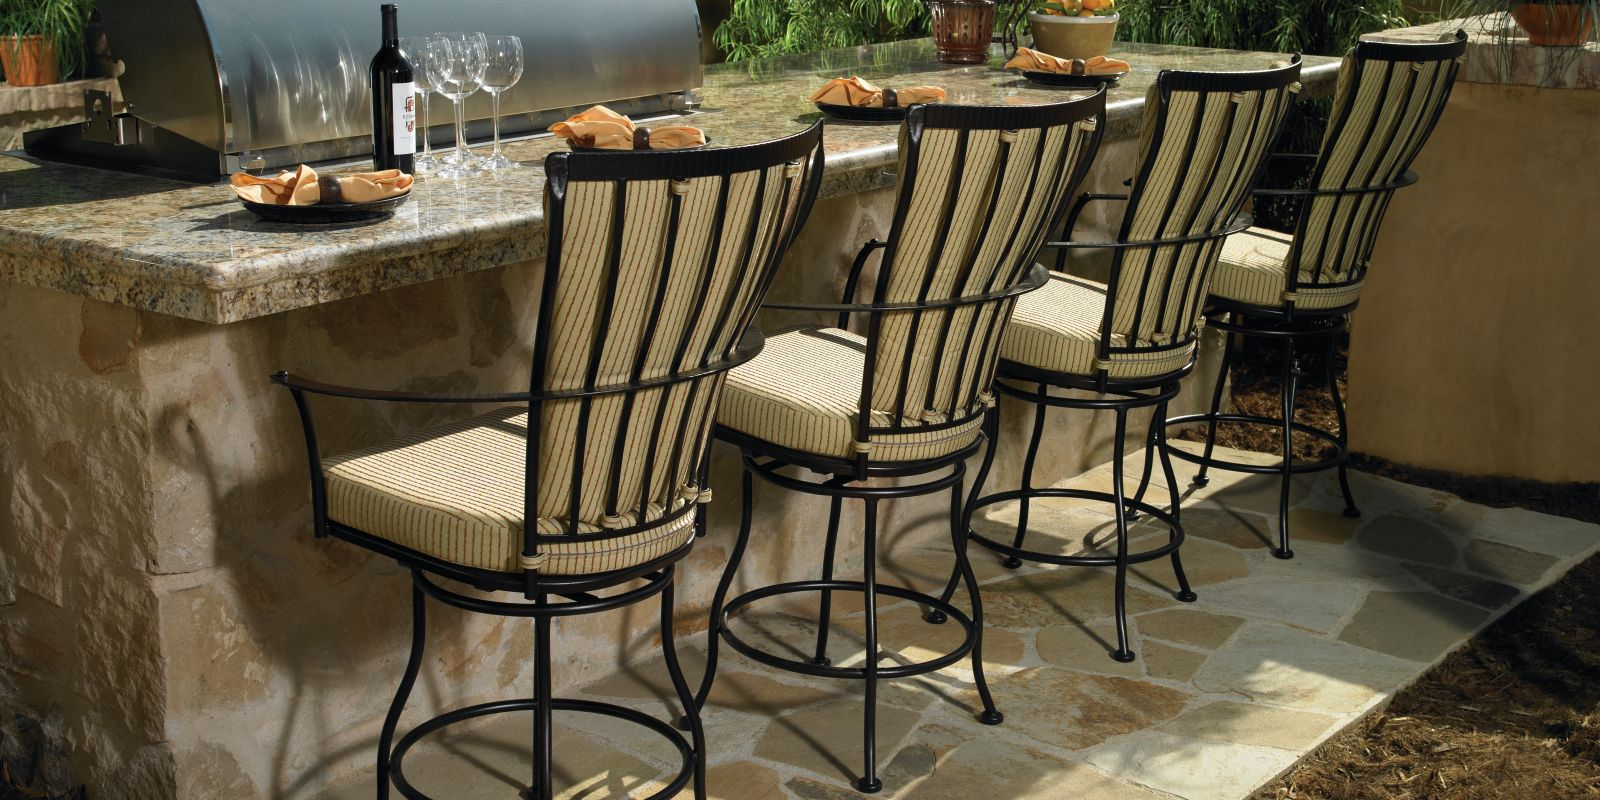 Outdoor Patio Design Specialist | American Casual Living on Porch & Patio Casual Living id=83630